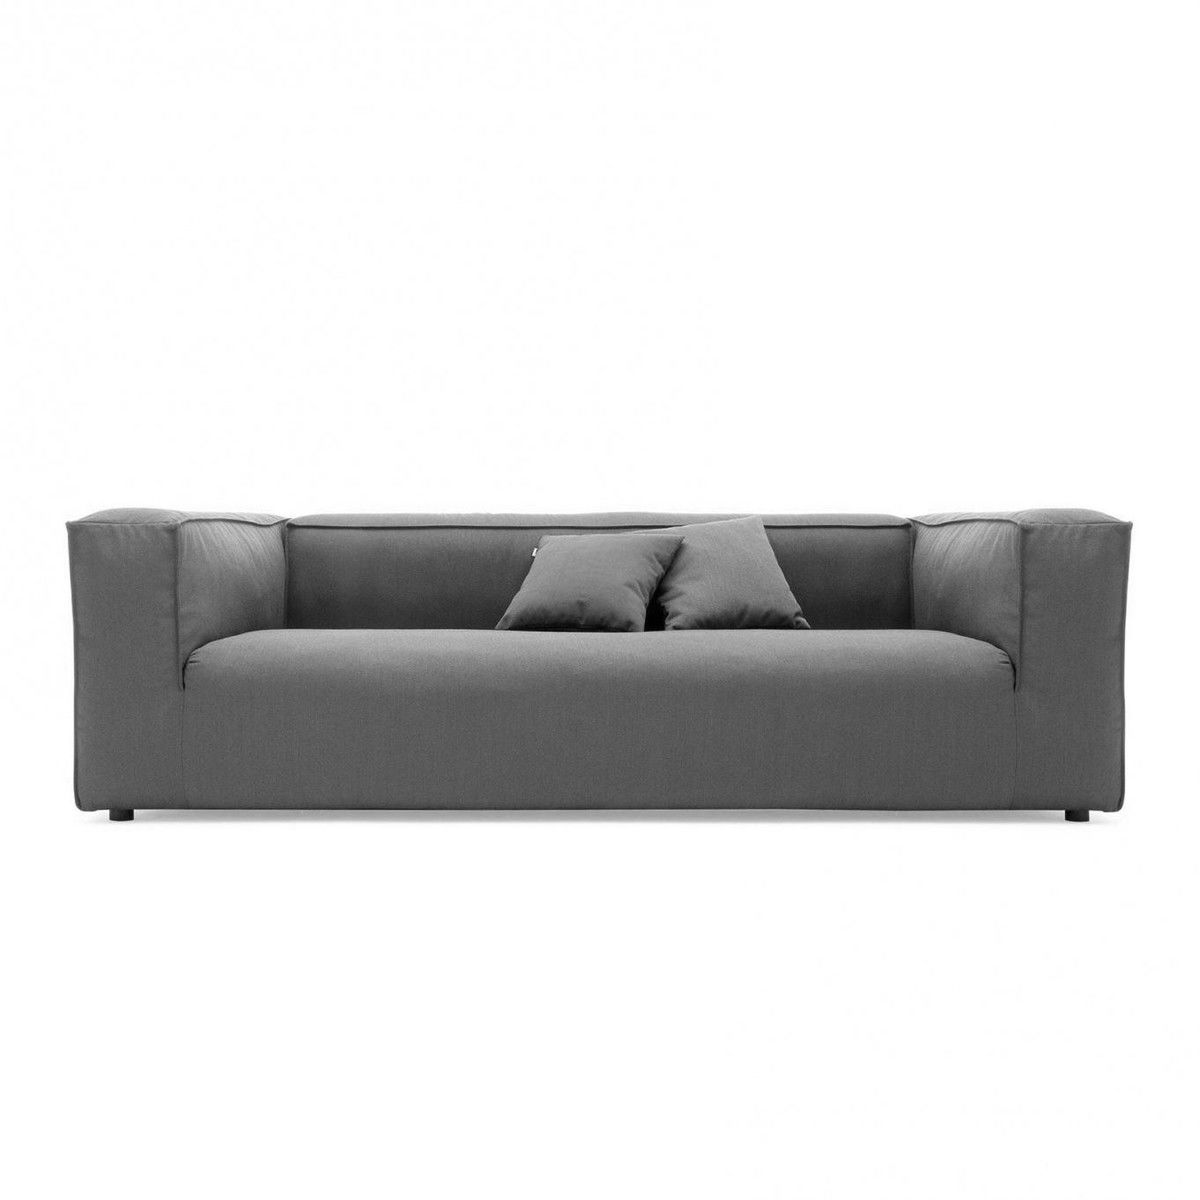 freistil 175 3 zits sofa freistil rolf benz. Black Bedroom Furniture Sets. Home Design Ideas